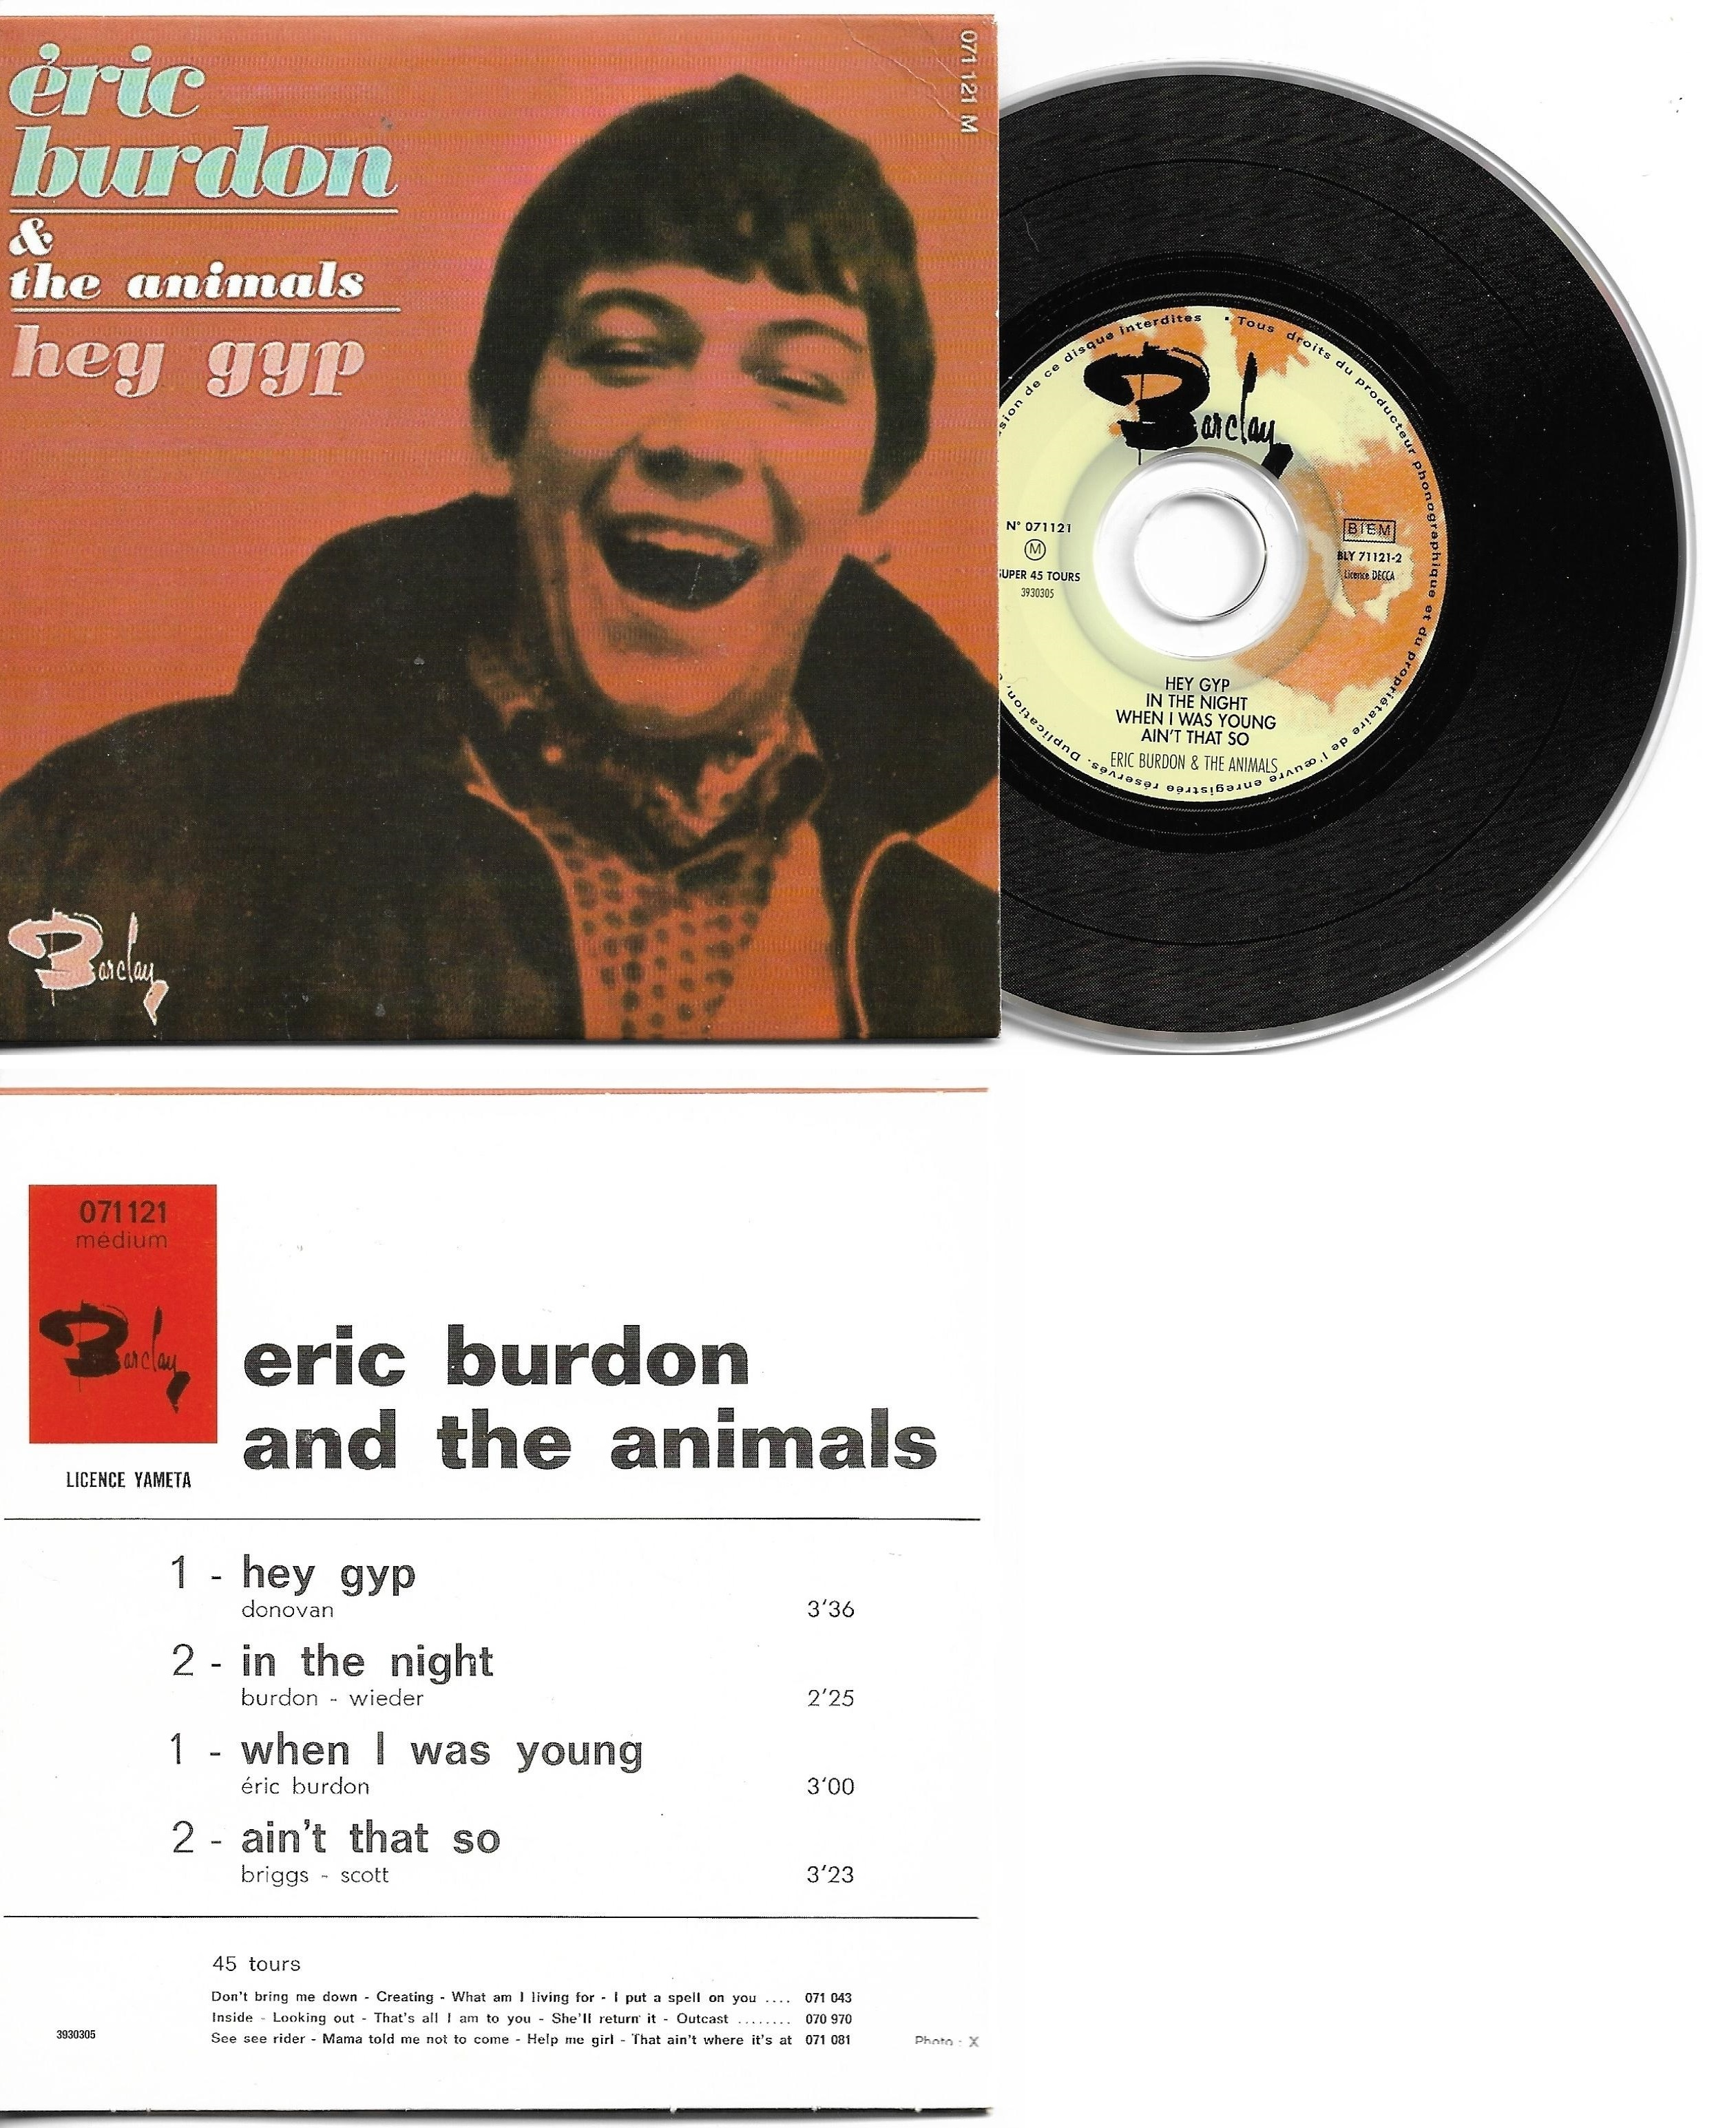 THE ANIMALS - ERIC BURDON - Hey Gyp - EP REPLICA - 4-track CARD SLEEVE - French sleeve - Very Limited Edition - CD single